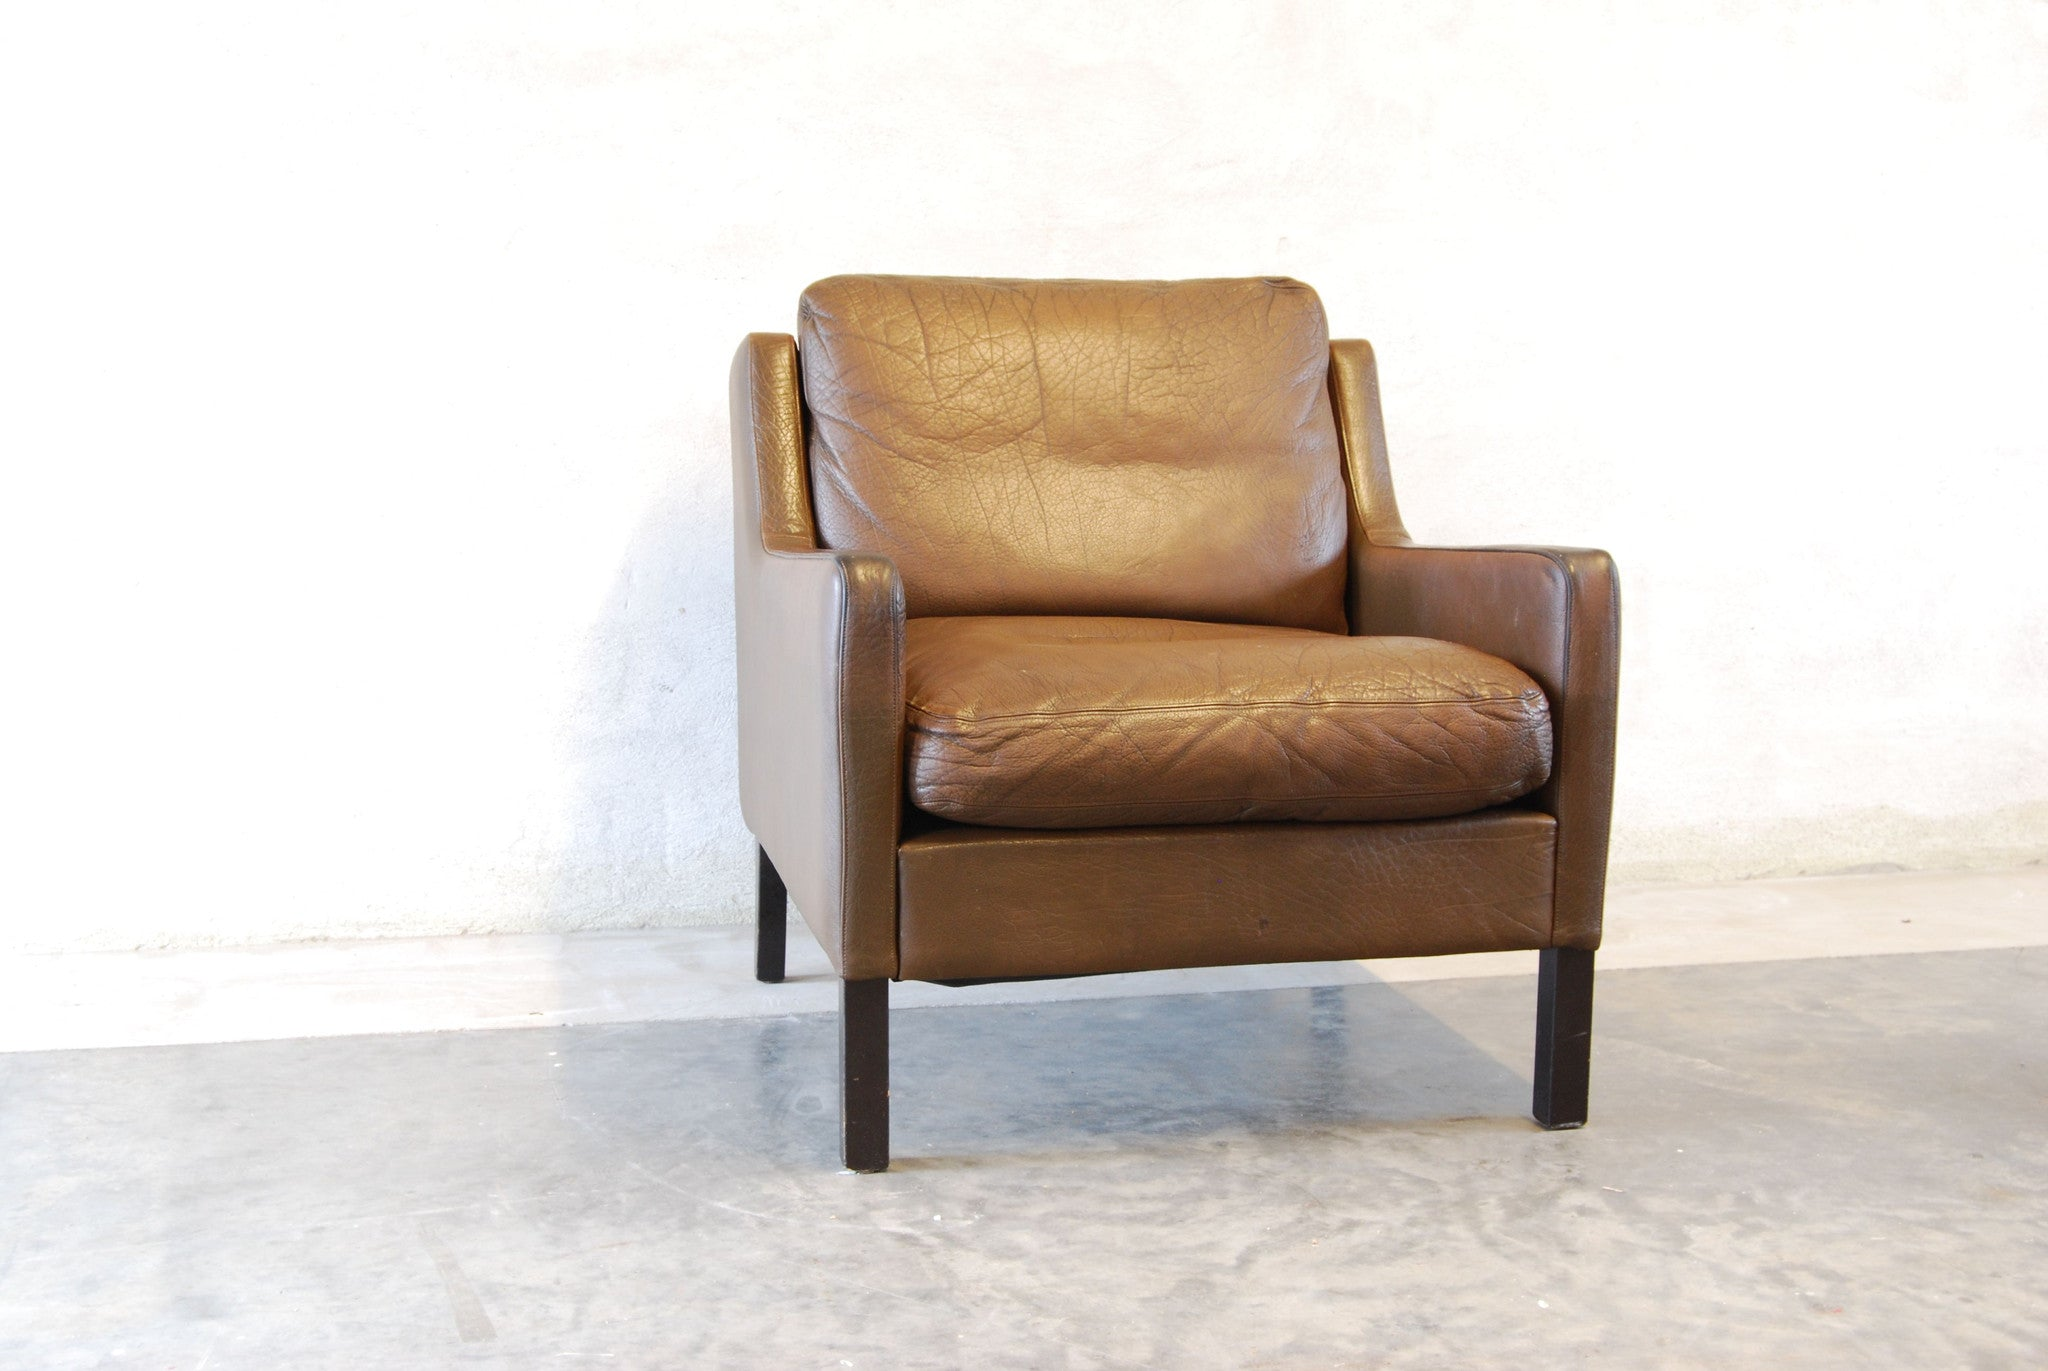 Chase & Sorensen Lounge chair in buffalo leather